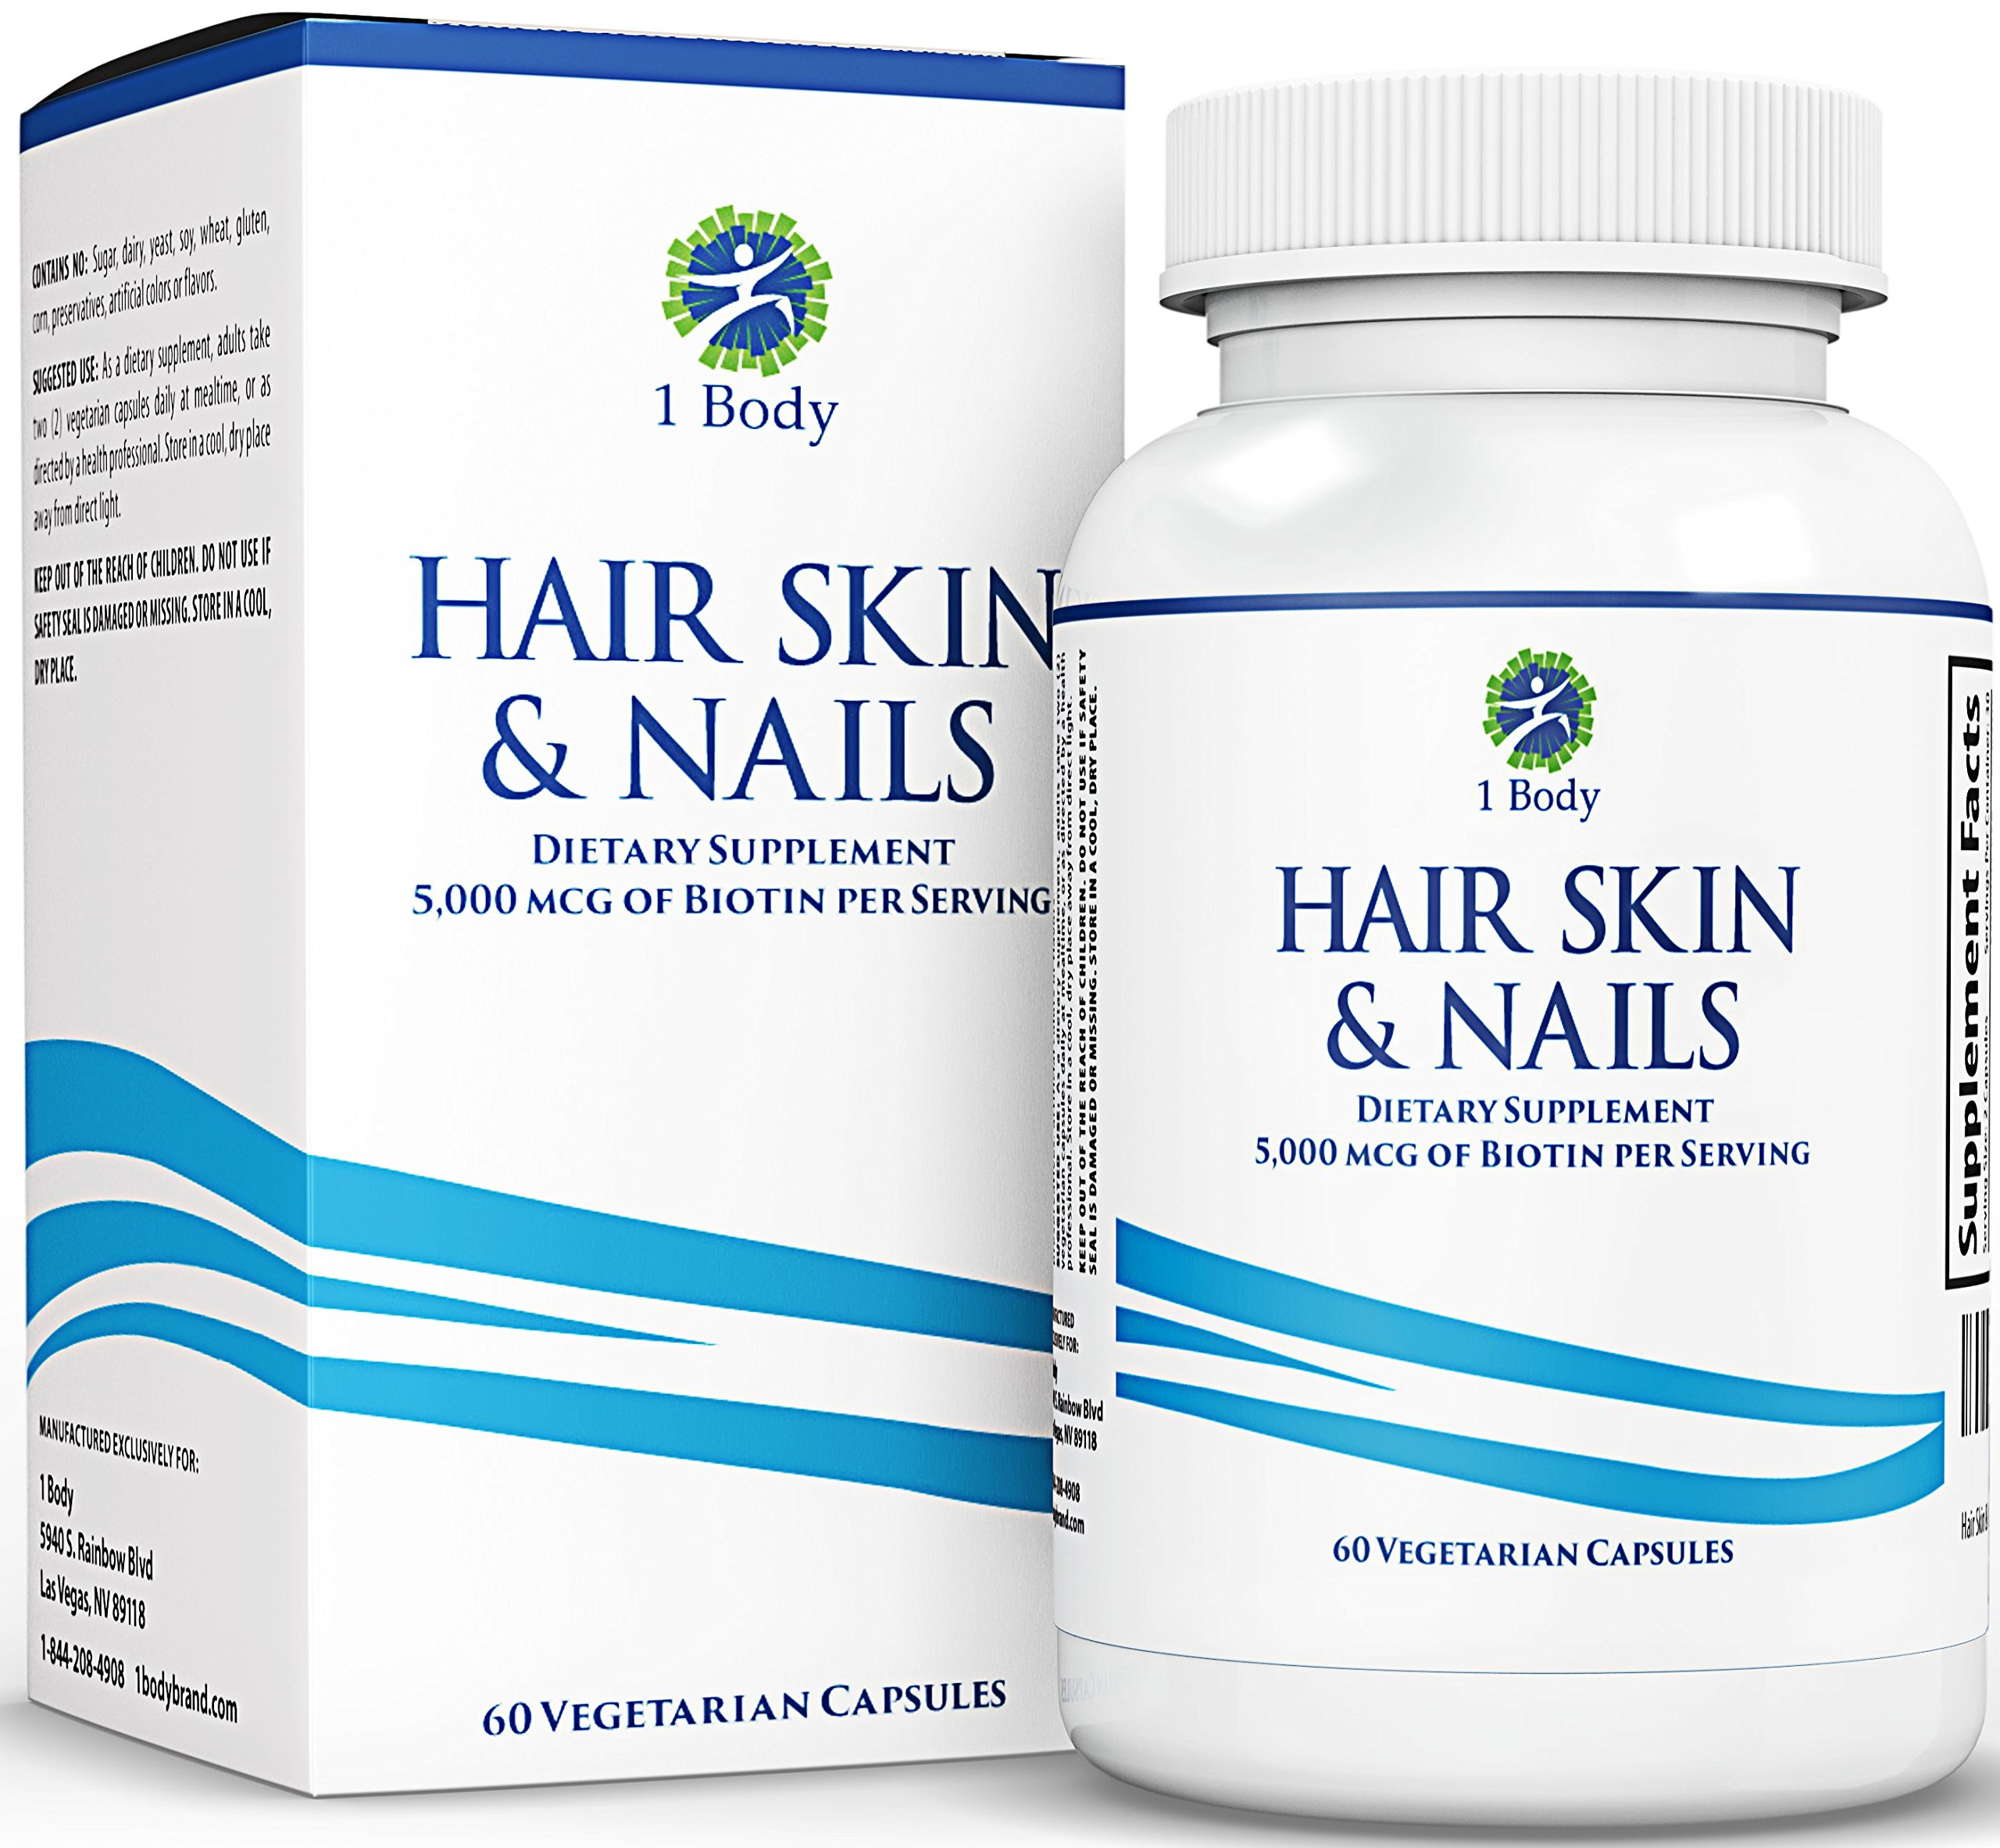 Hair, Skin, Nails Vitamins – 5000 mcg of Biotin to Make Your Hair Grow & Skin Glow with 25 Other Vitamins Nail Growth and Skin Care Formula for Men & Women